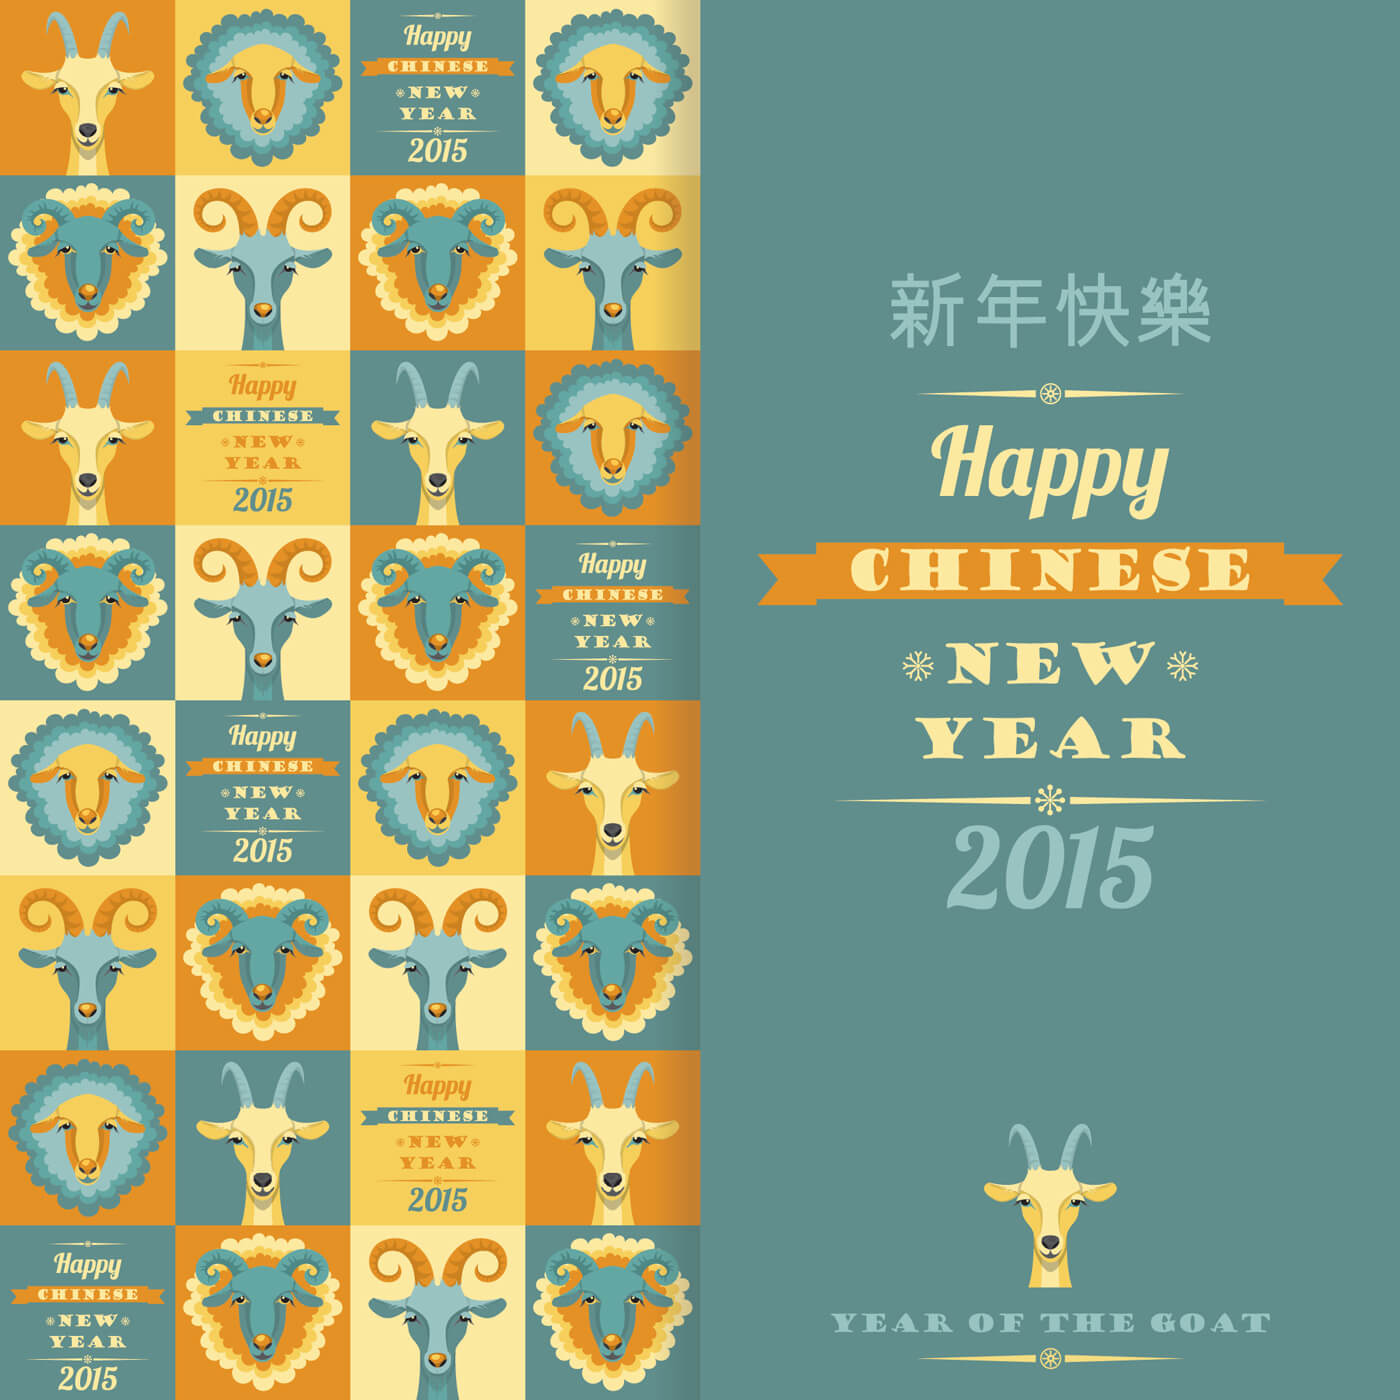 Free Vector Happy Chinese New Year Vector Illustration Of Goat And